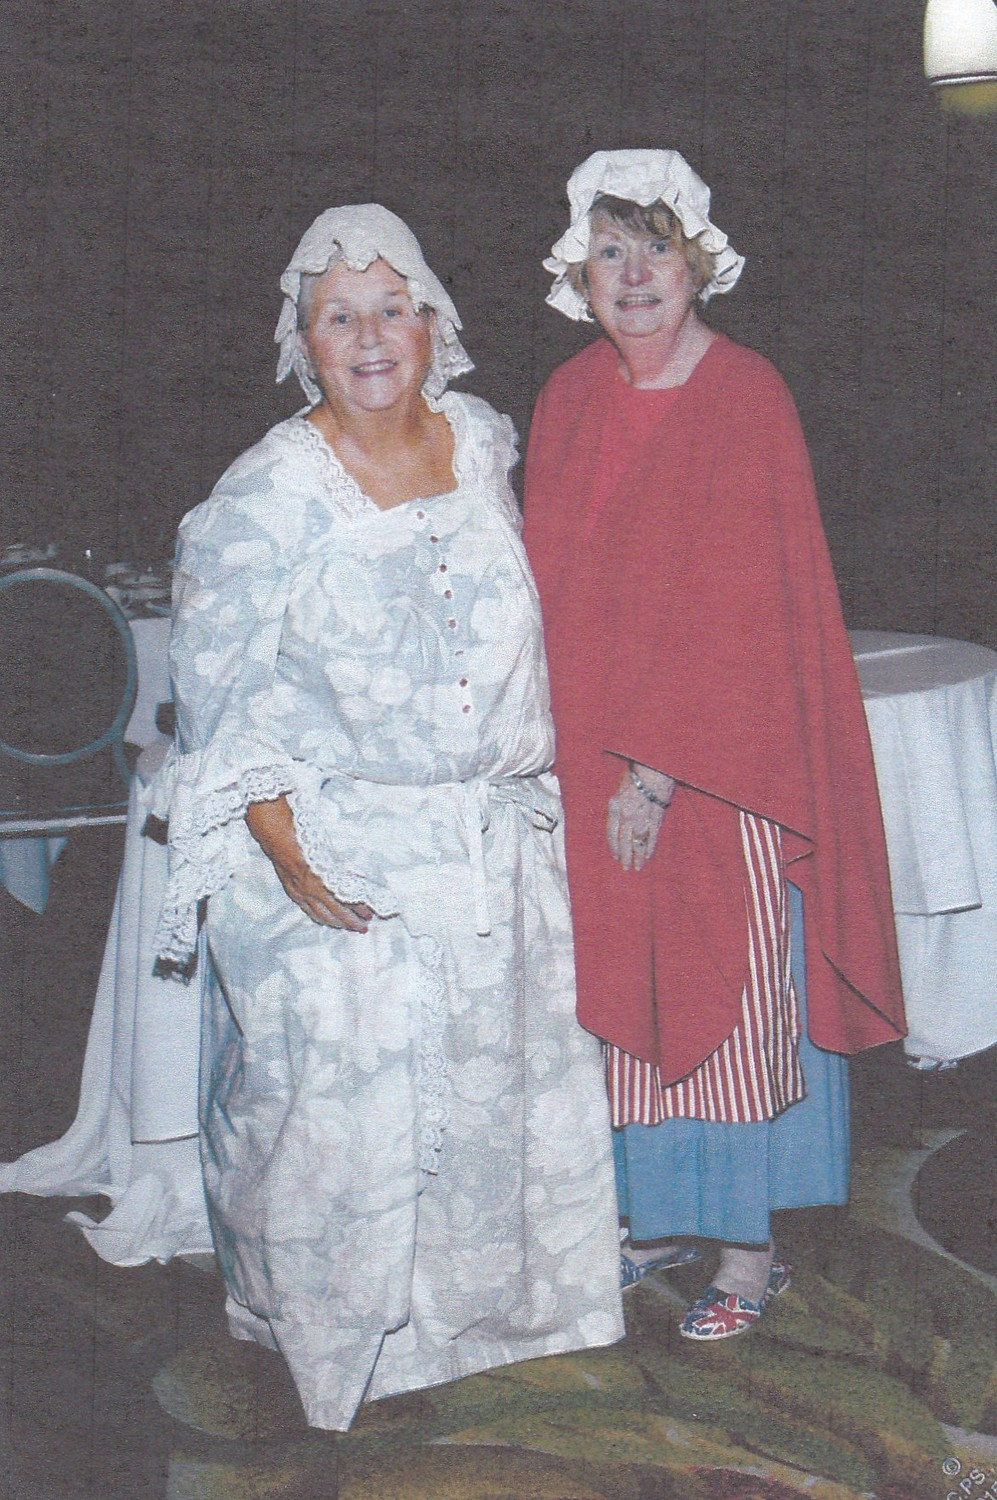 Regent Sandy Leonard, left, and Cook, of the Daughters of the American Revolution's Jerusalem Chapter, have portrayed Agent 355 and Anna Smith Strong, respectively, at educational programs for members of the group and the community.